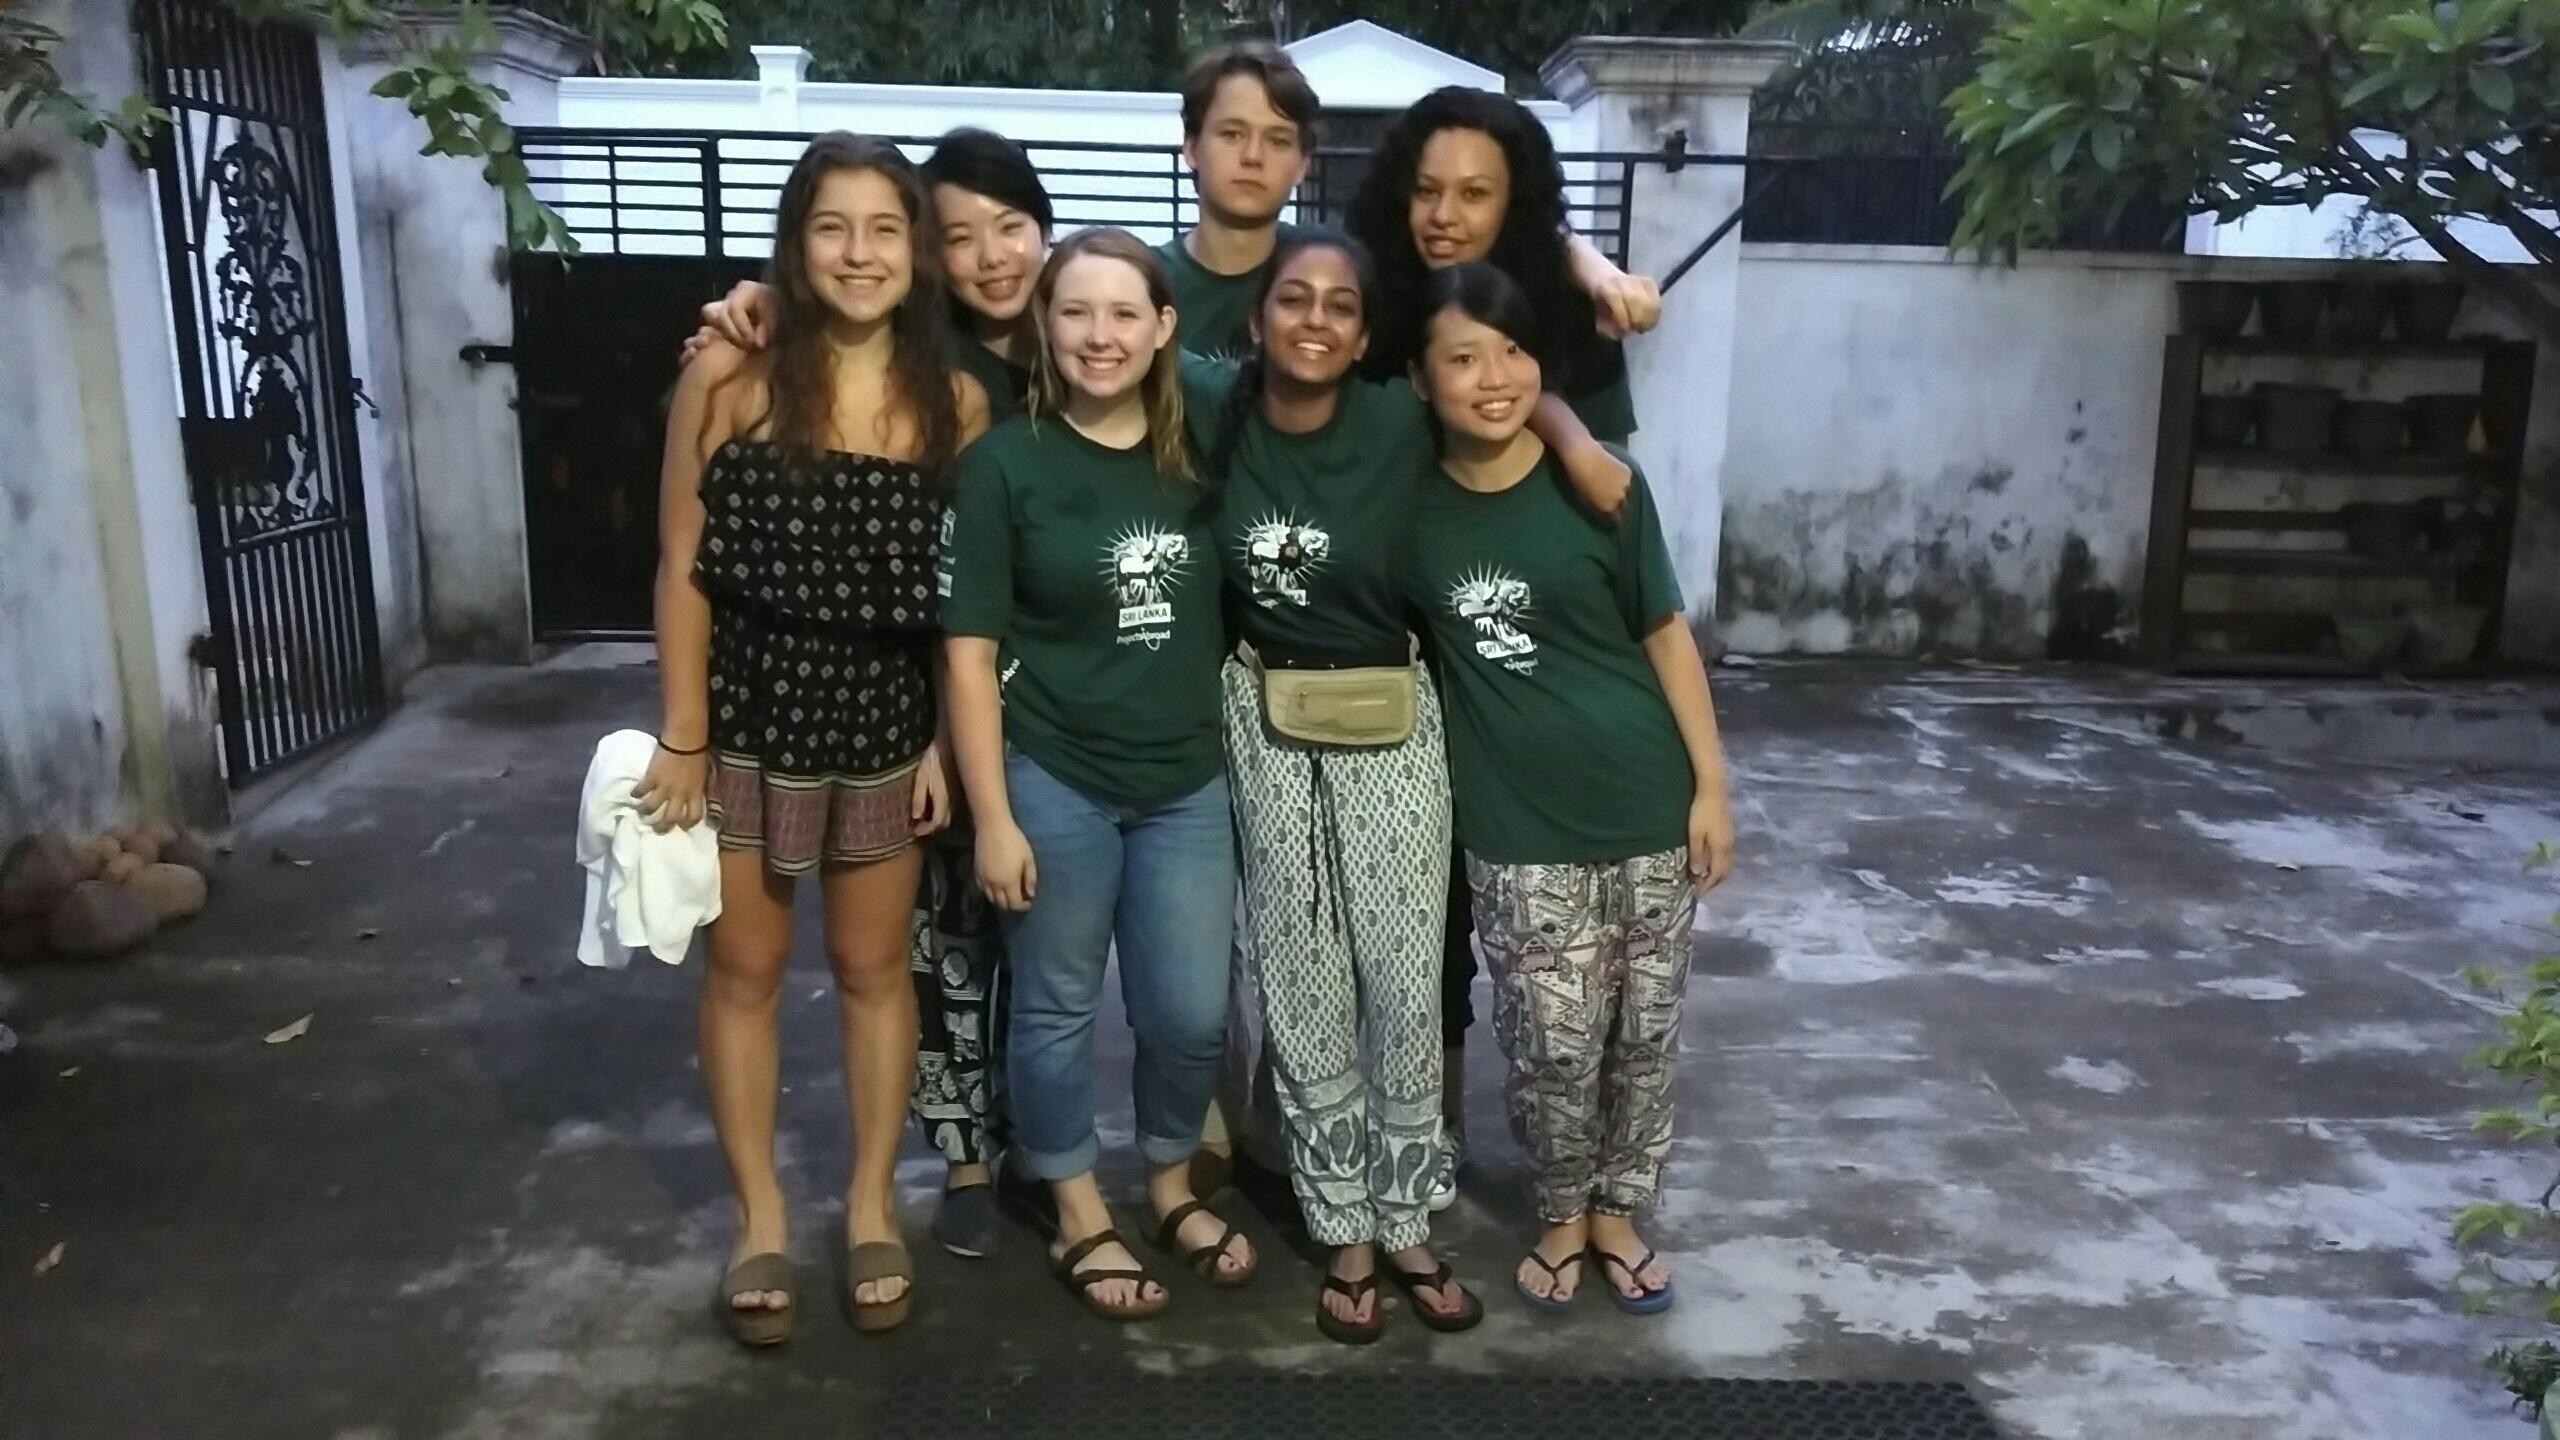 Projects Abroad interns prepare for their project work on our medical internship for high school students in Sri Lanka